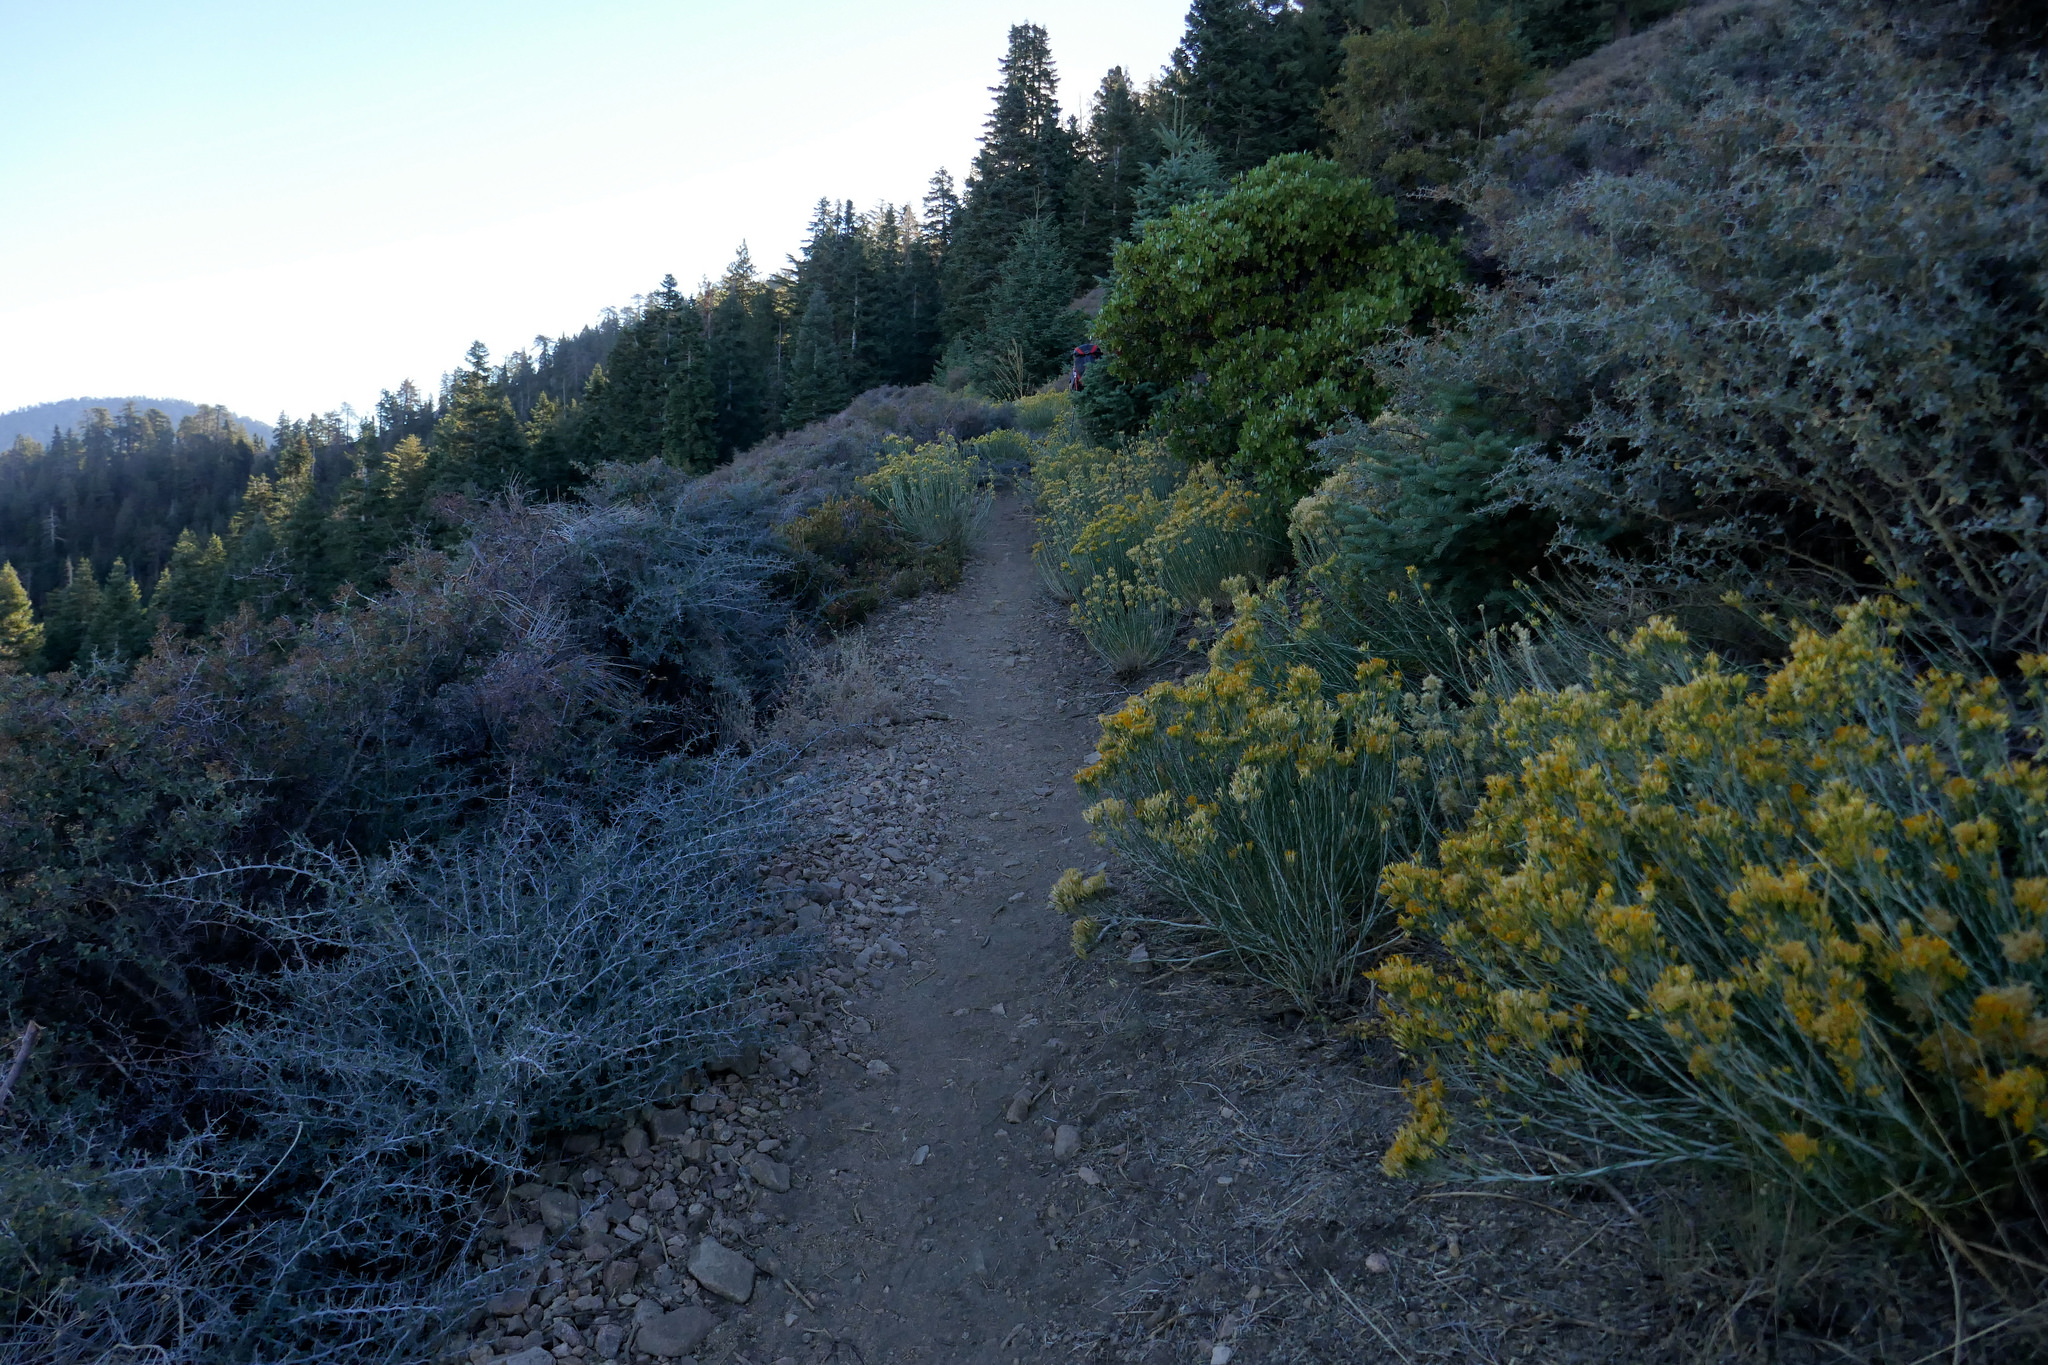 Rabbit brush abounds on this first section. Lots of insects are enjoying the golden blooms.